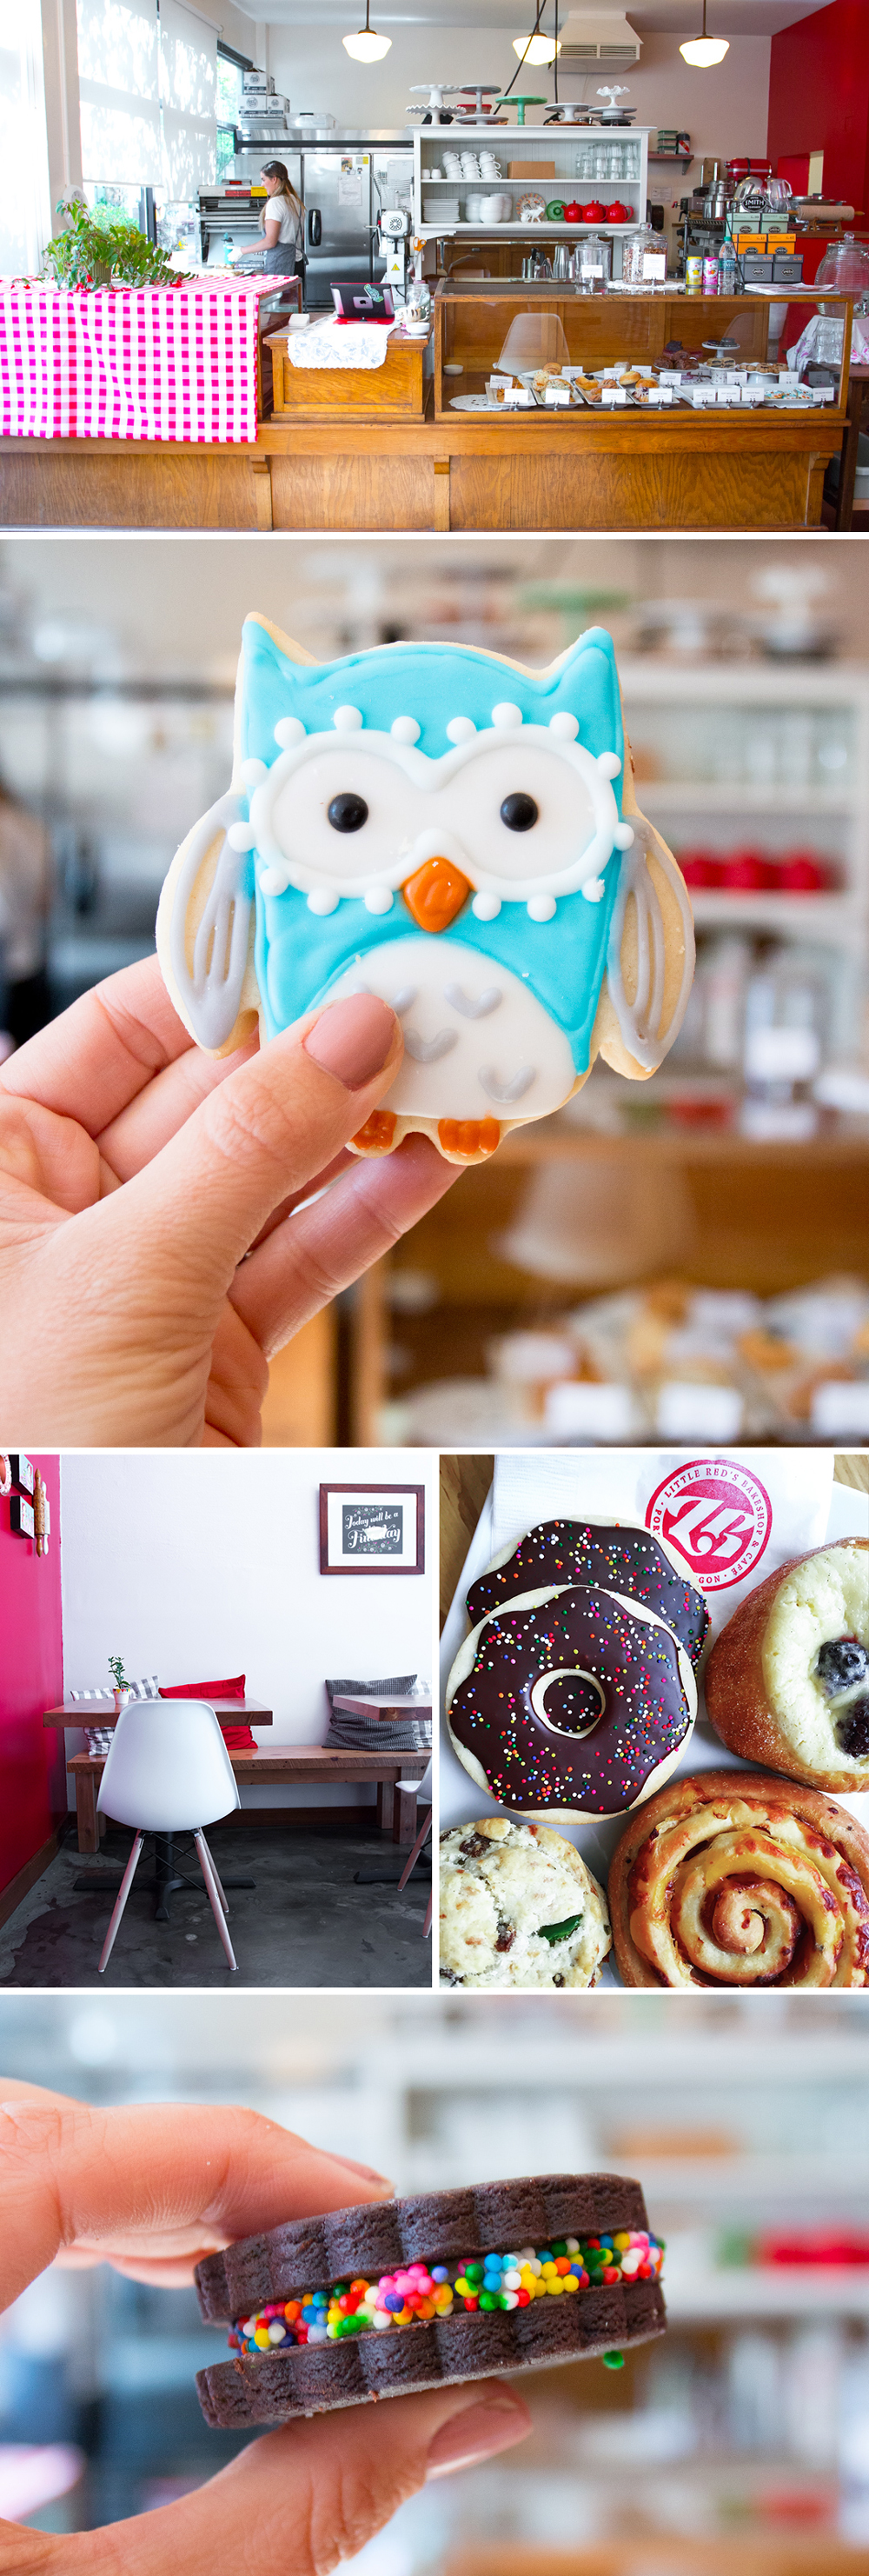 Little Red's Bakeshop & Café in SW Portland is a hoot! Just look at all of the fun, colorful goods!